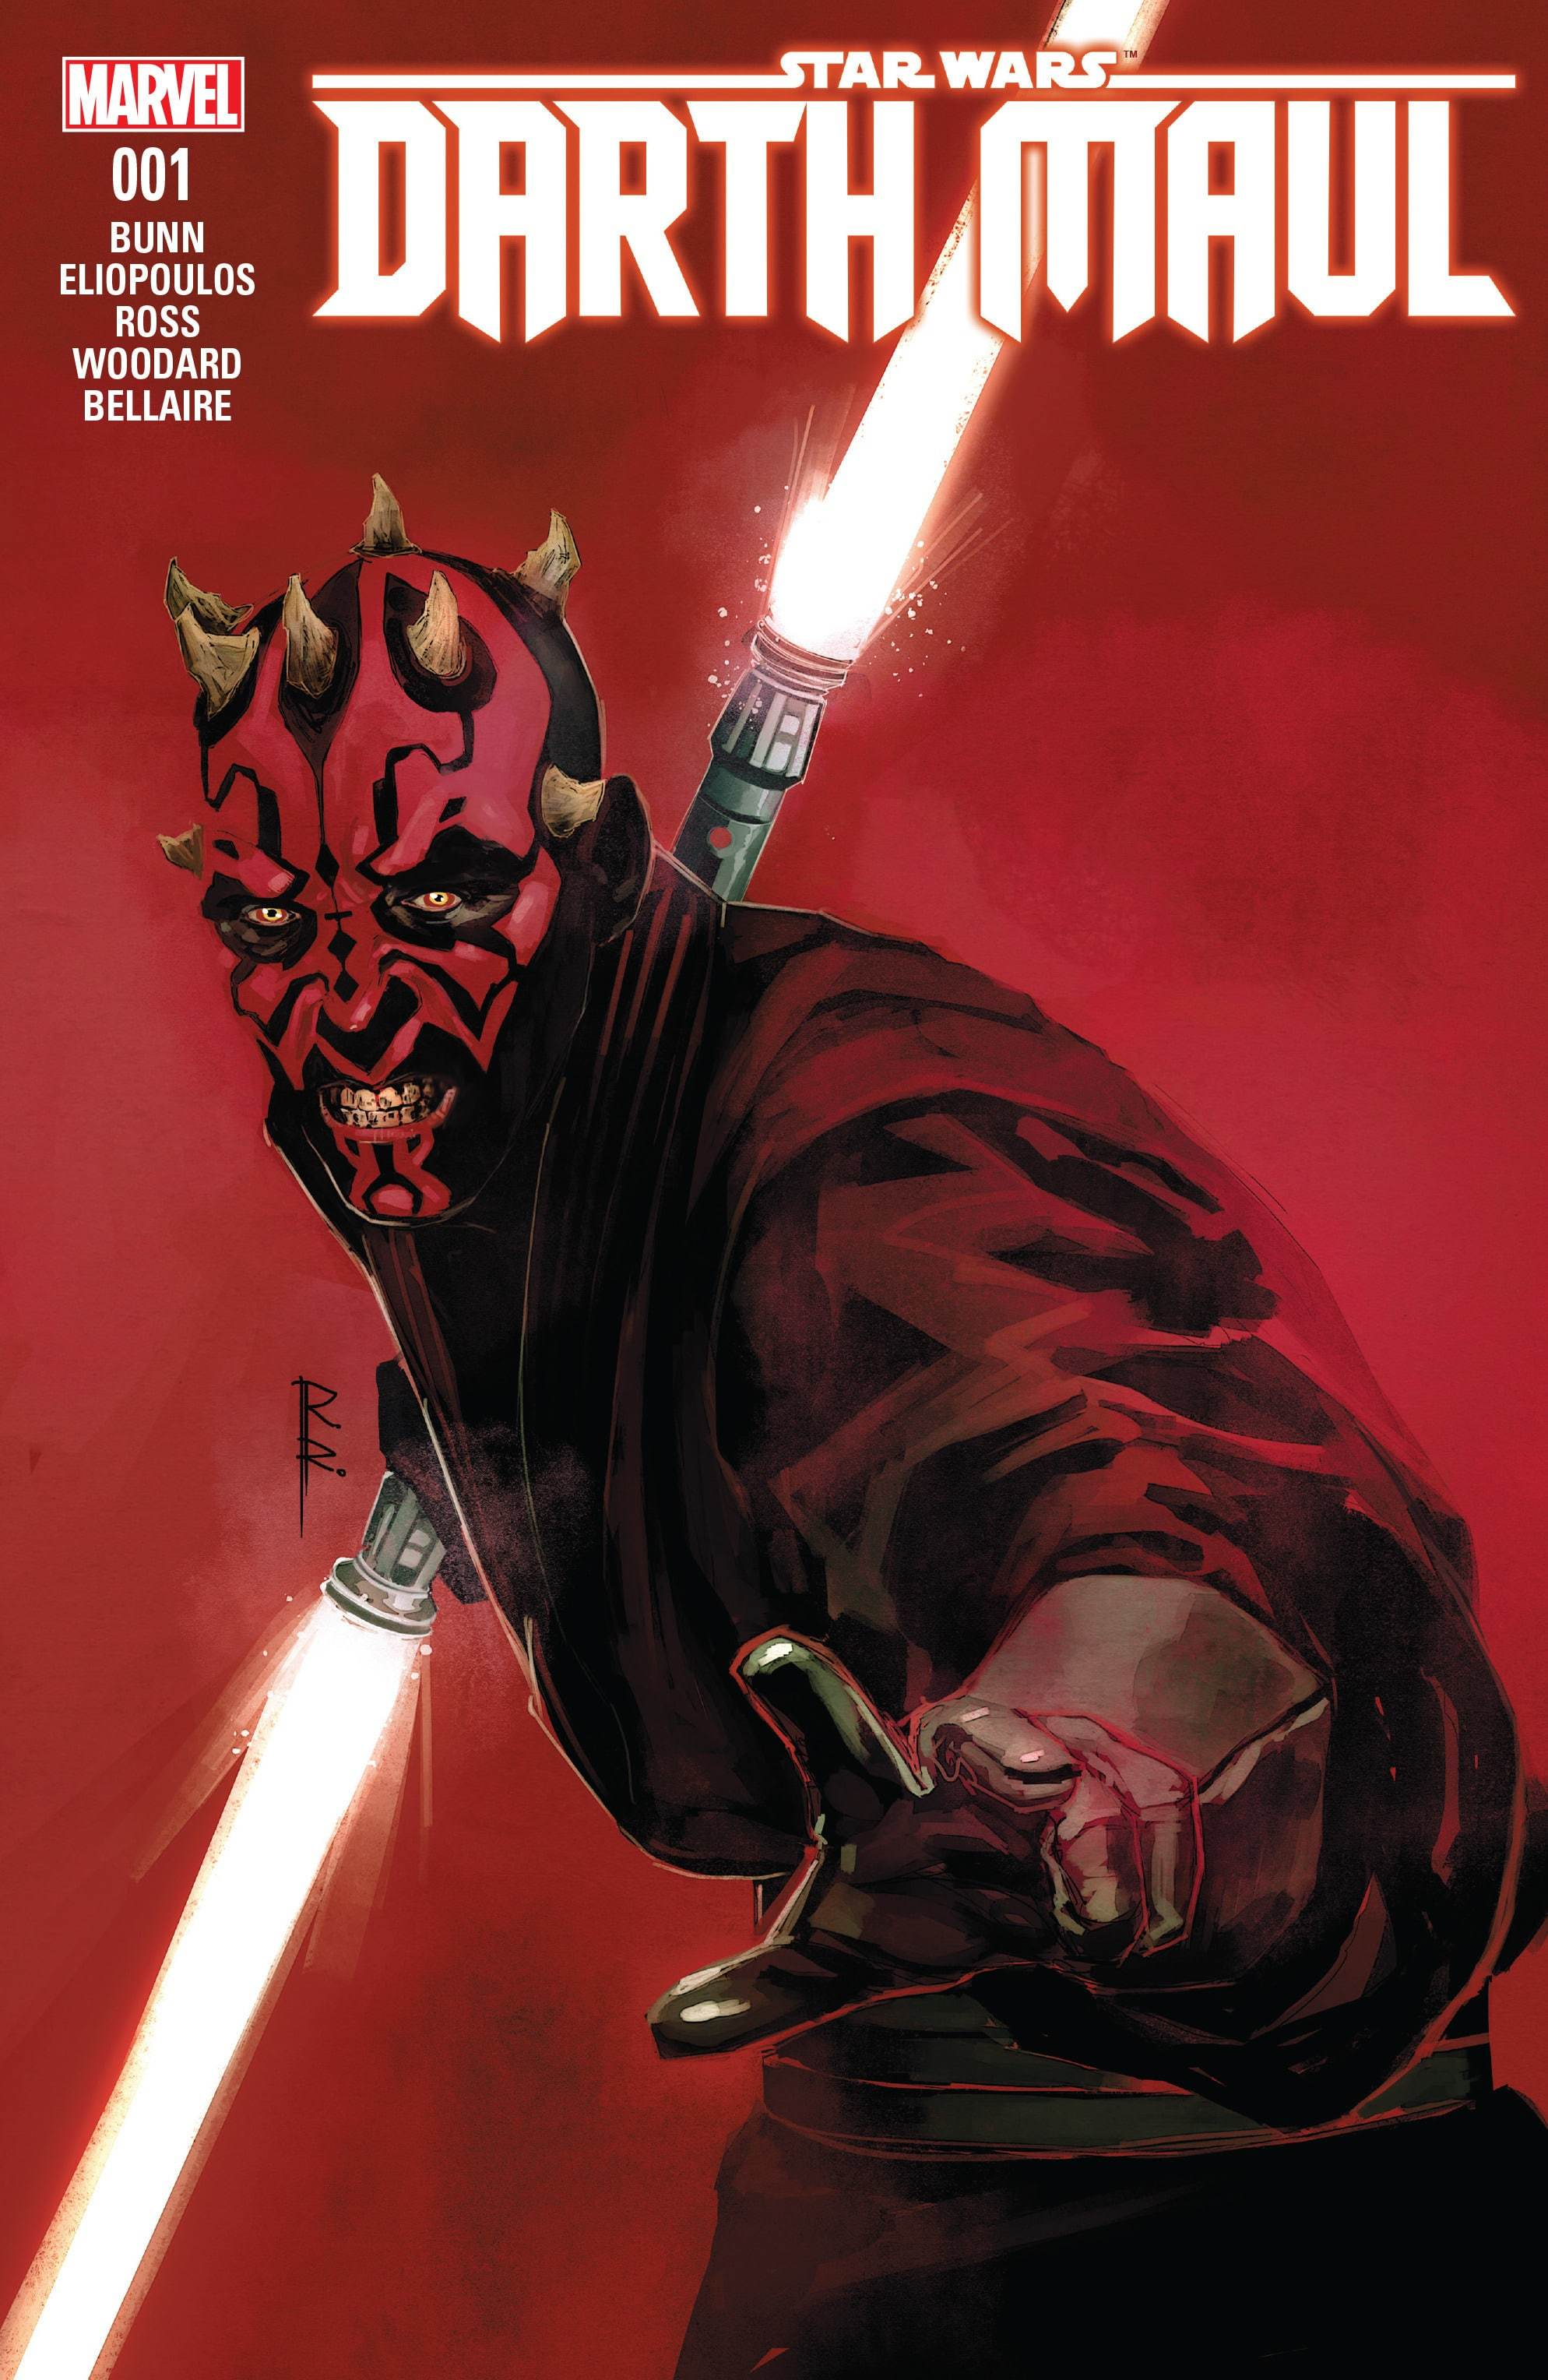 Star Wars: Darth Maul #1 artwork